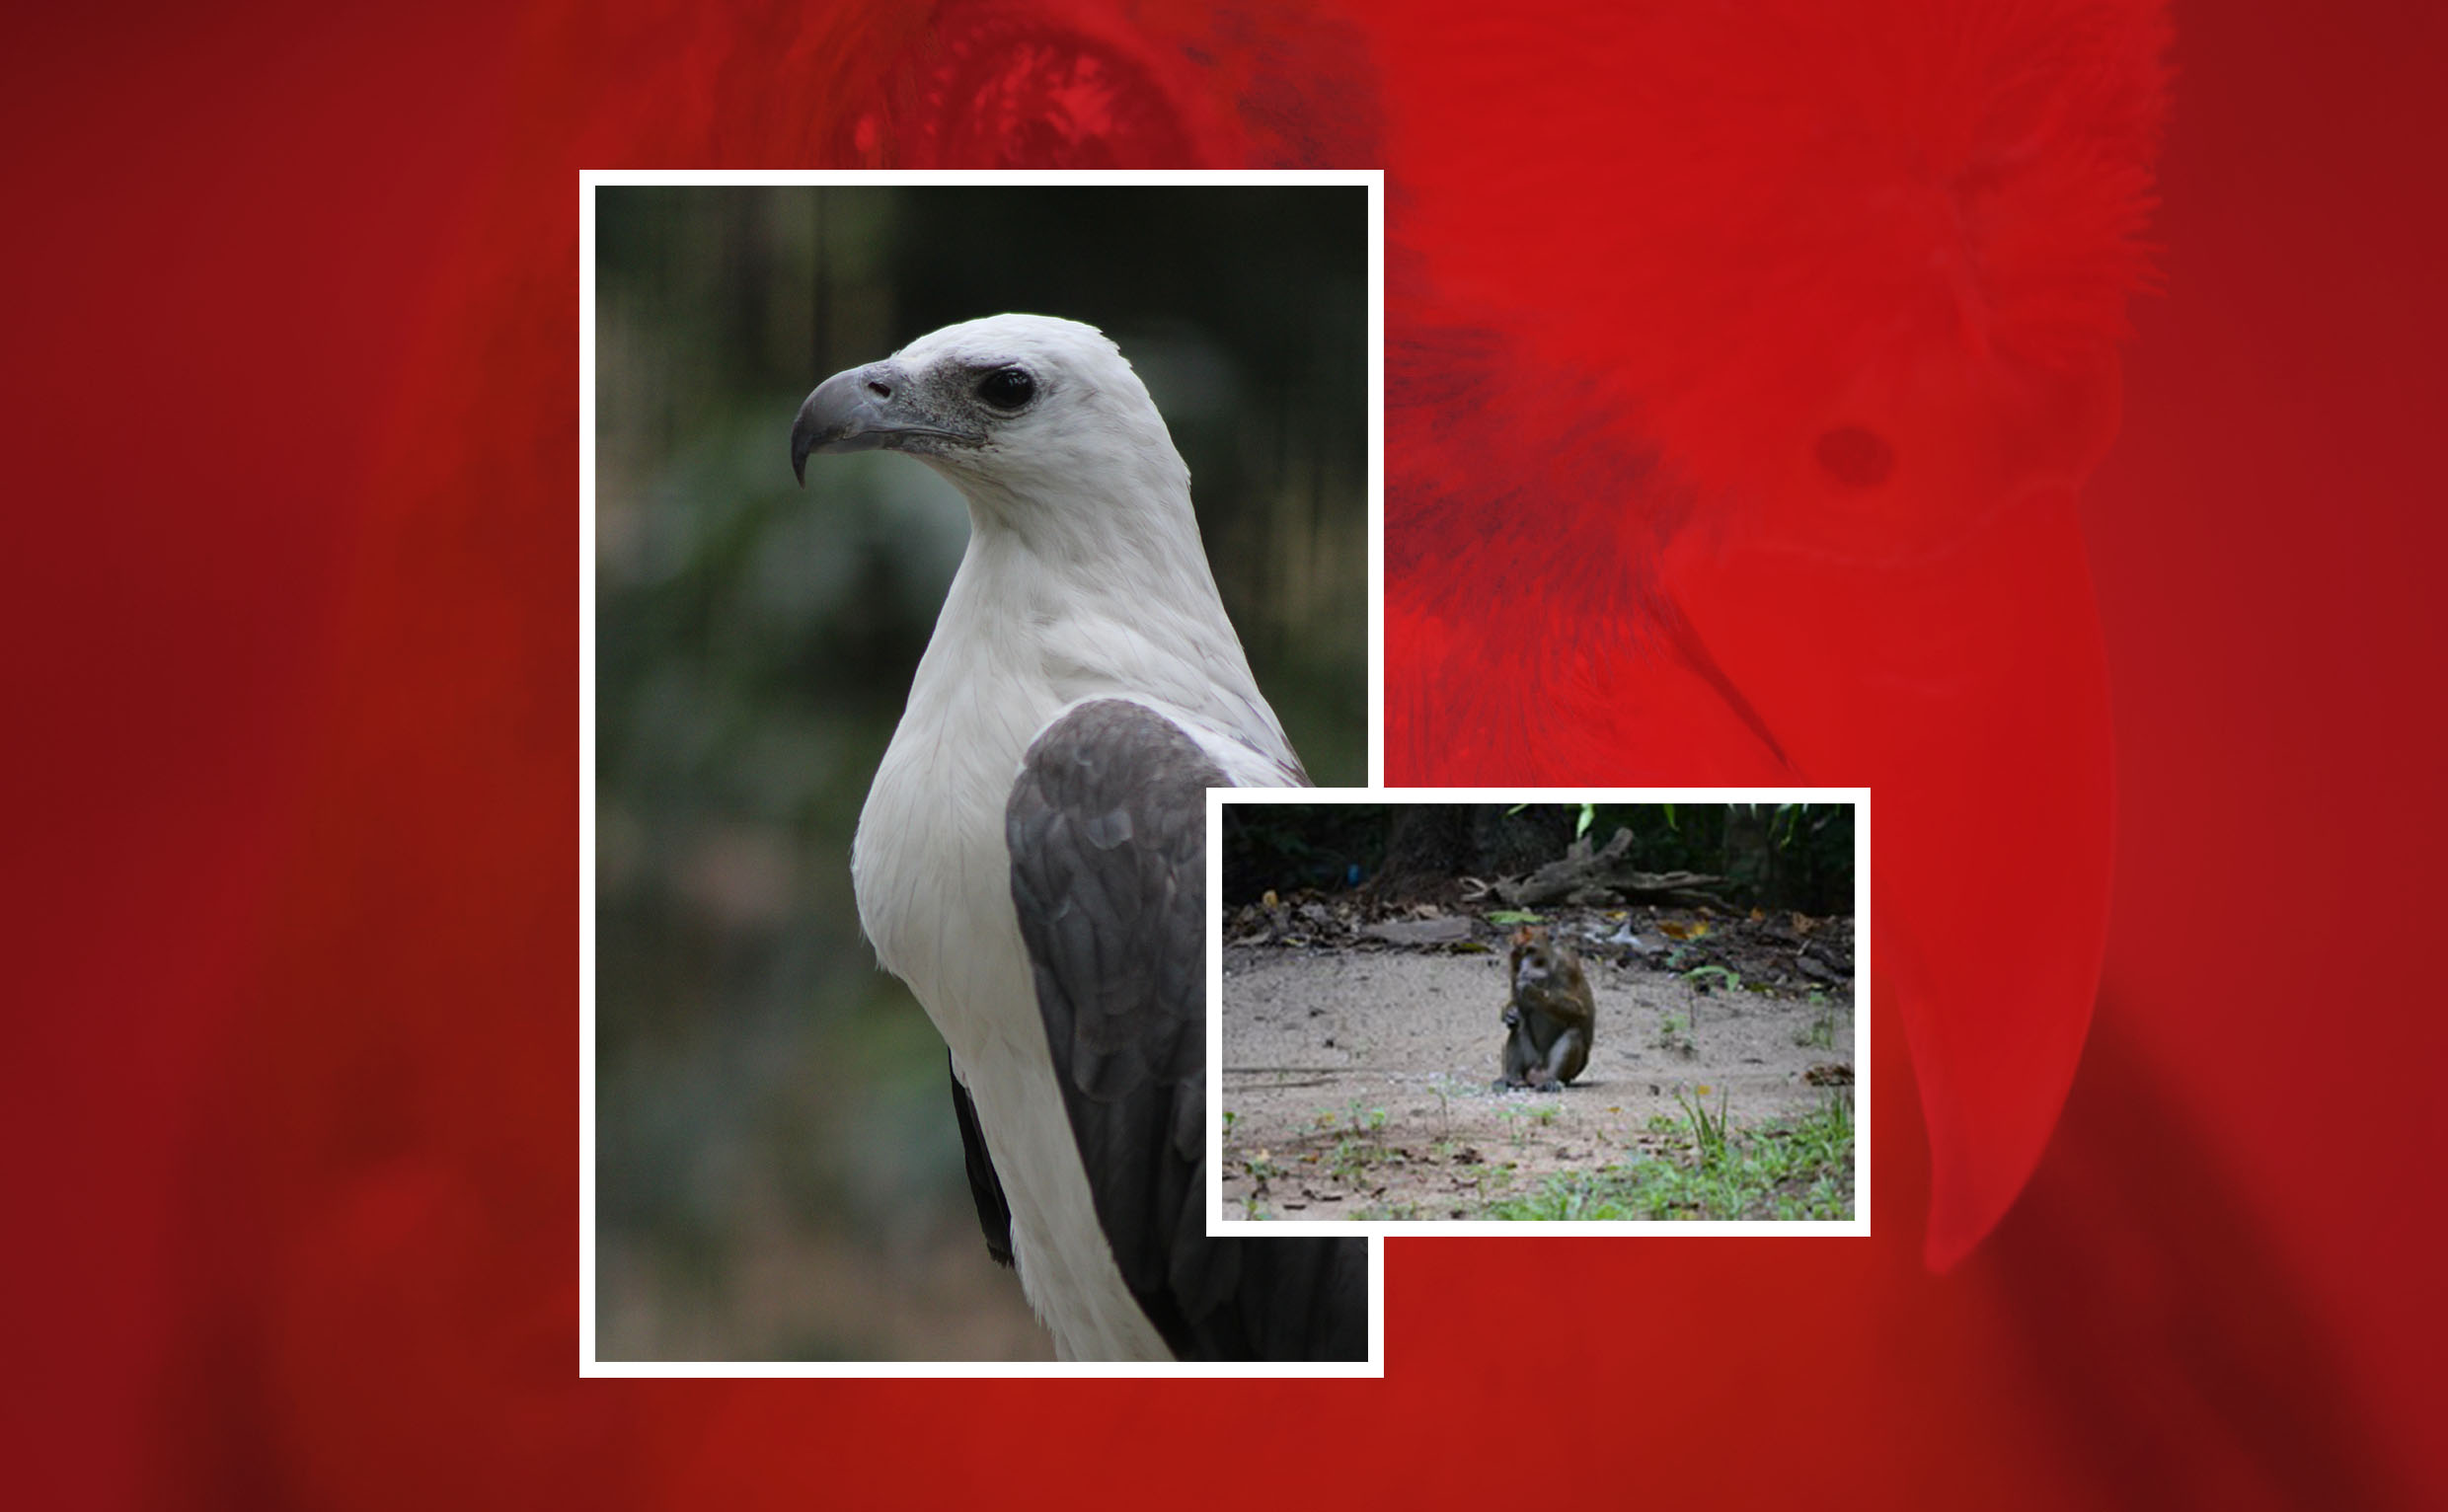 UPLB biologists talk about zoonoses from birds, monkeys